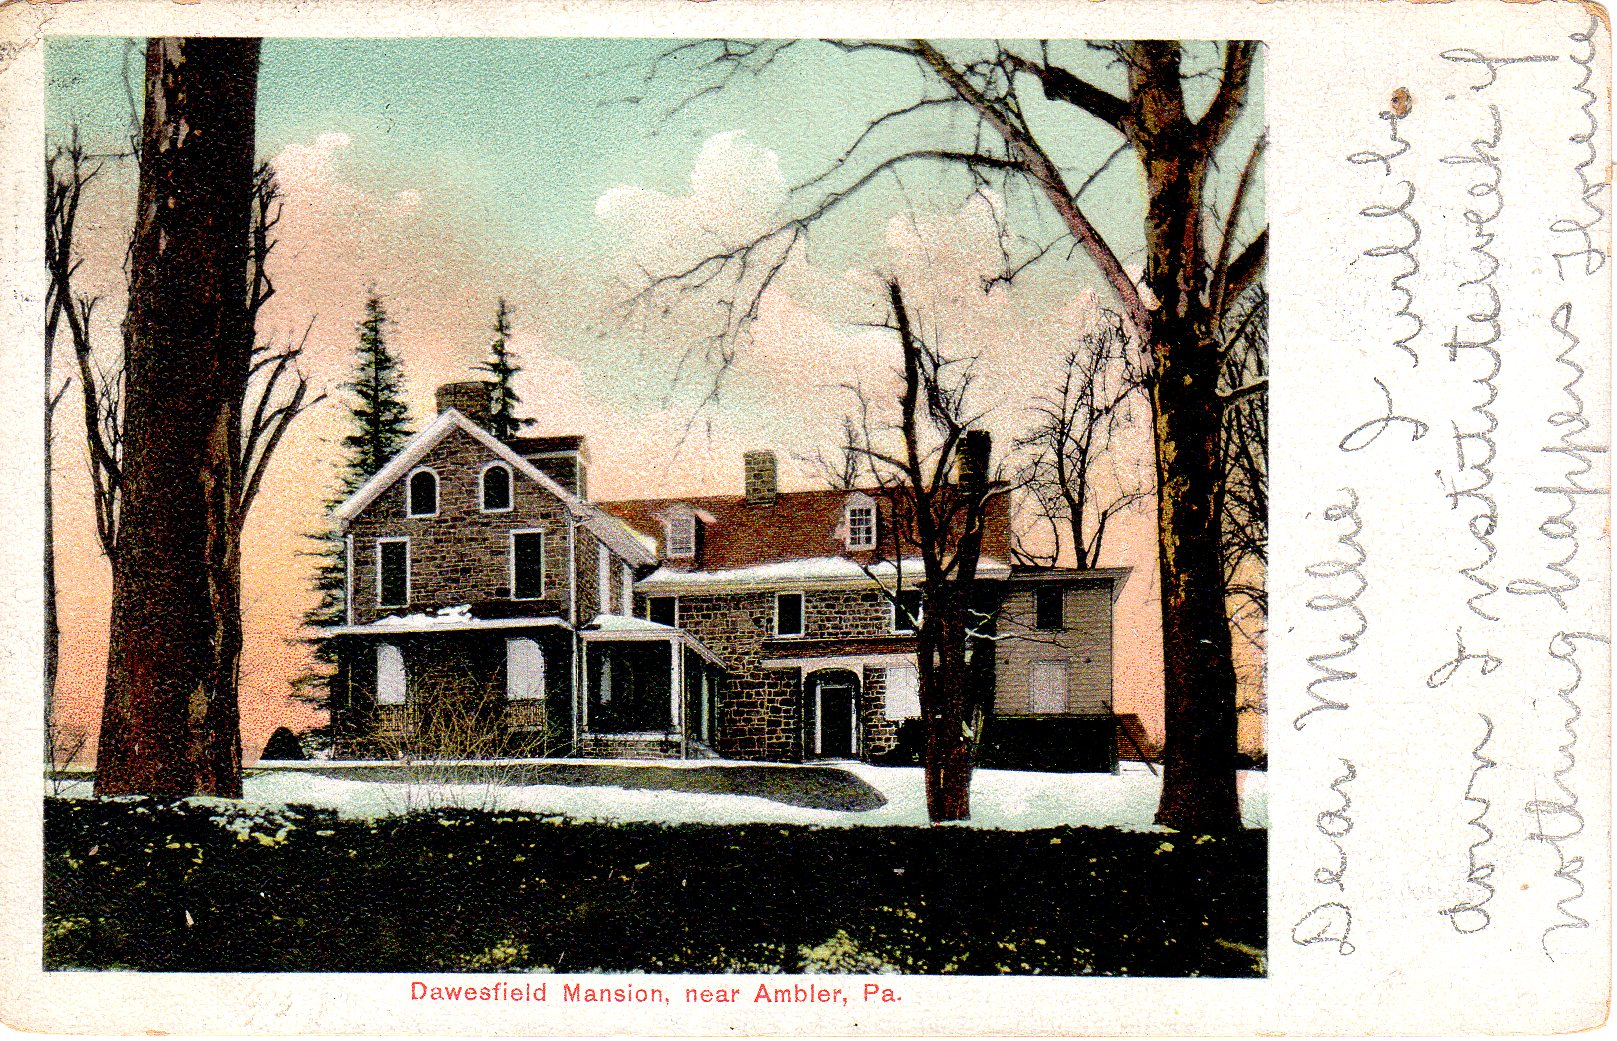 Post Card Collection (E Simon)_2682_66_Dawesfield Mansion near Ambler, Pa_20 Oct 1906